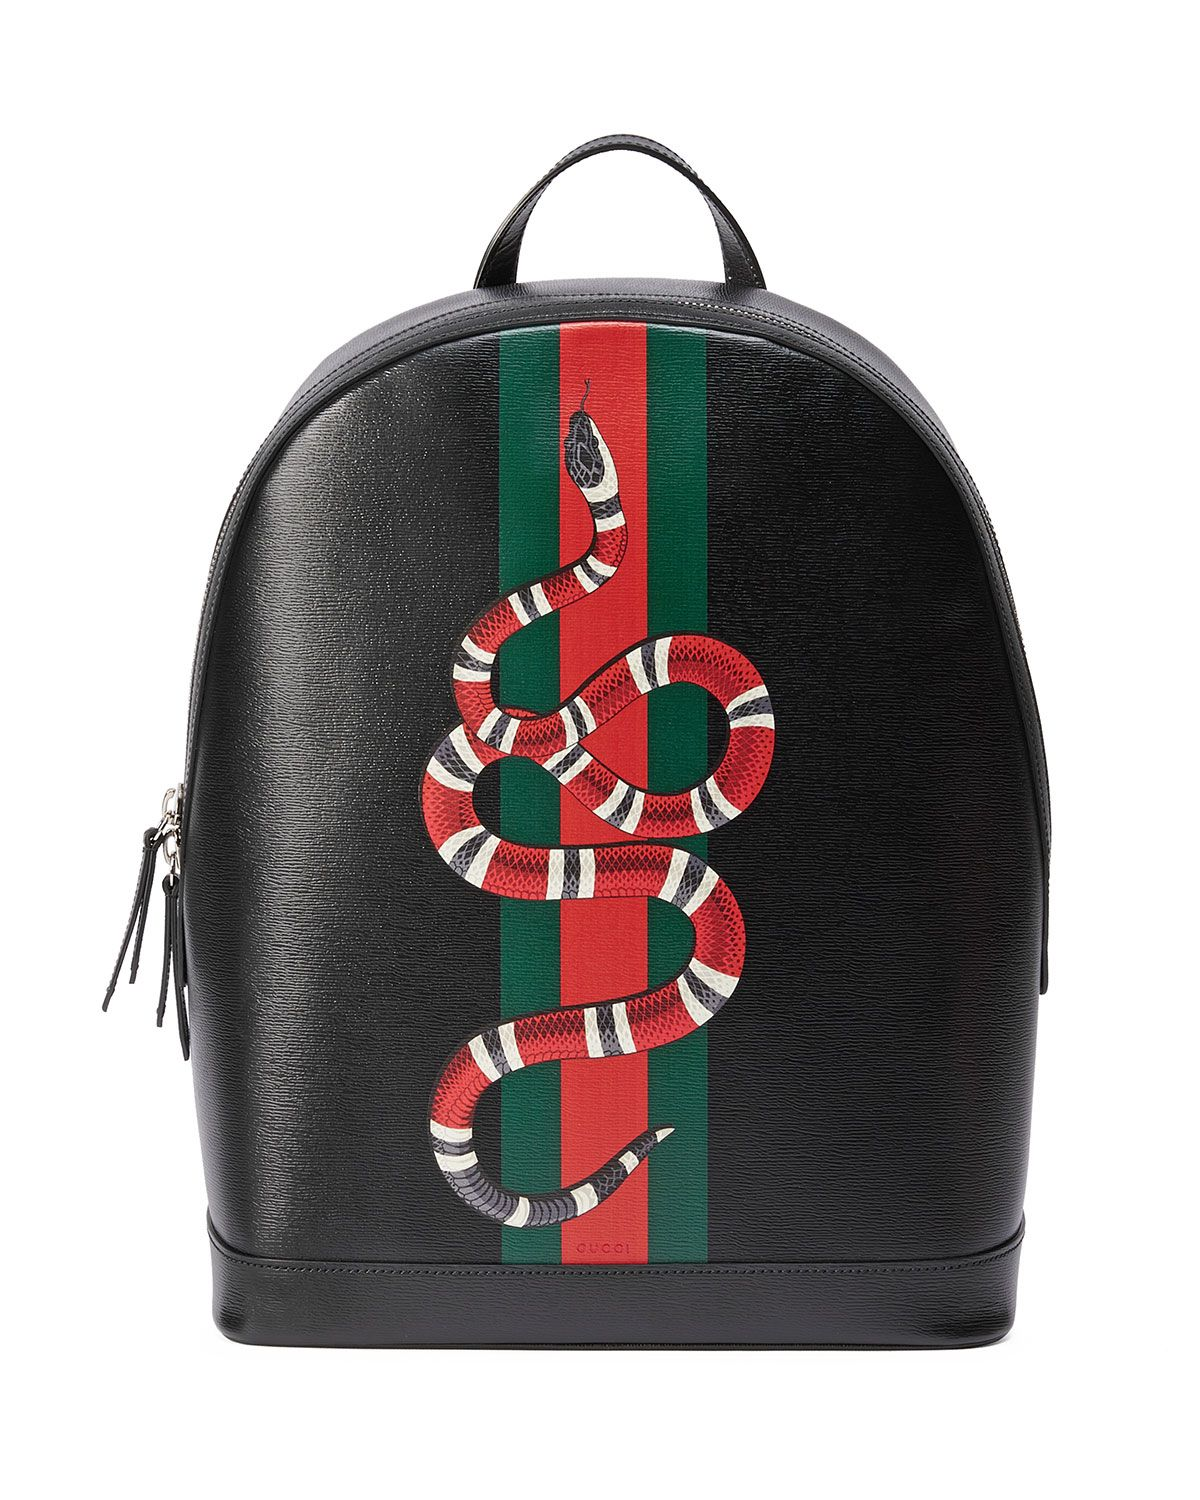 590ccba802ce Gucci Web   Snake Leather Backpack